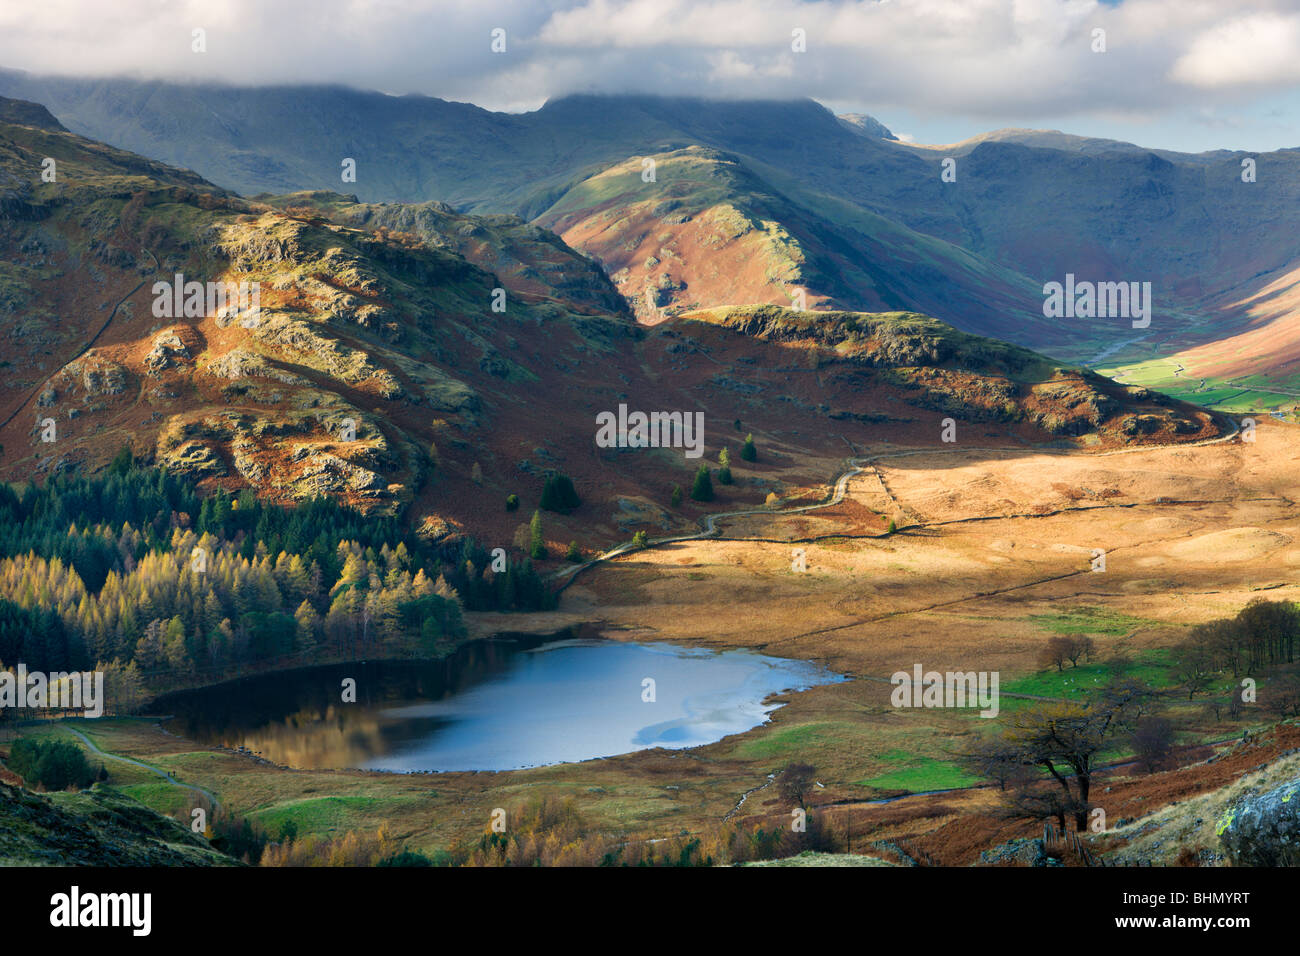 Blea Tarn and Wrynose Fell in the Lake District National Park, Cumbria, England, UK. Autumn (November) 2009 - Stock Image